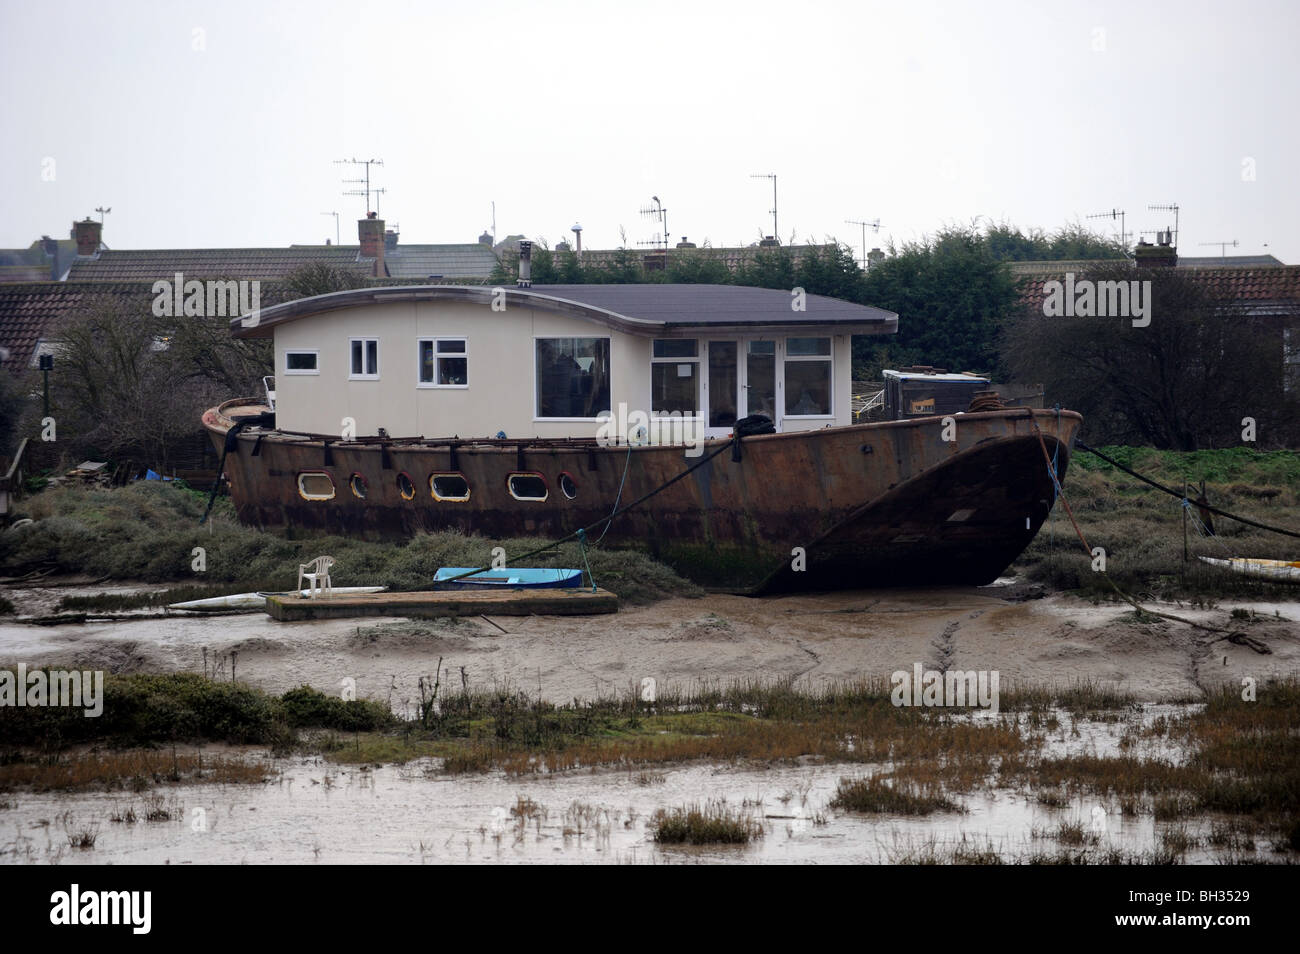 Houseboats moored on the river adur at shoreham by sea Stock Photo